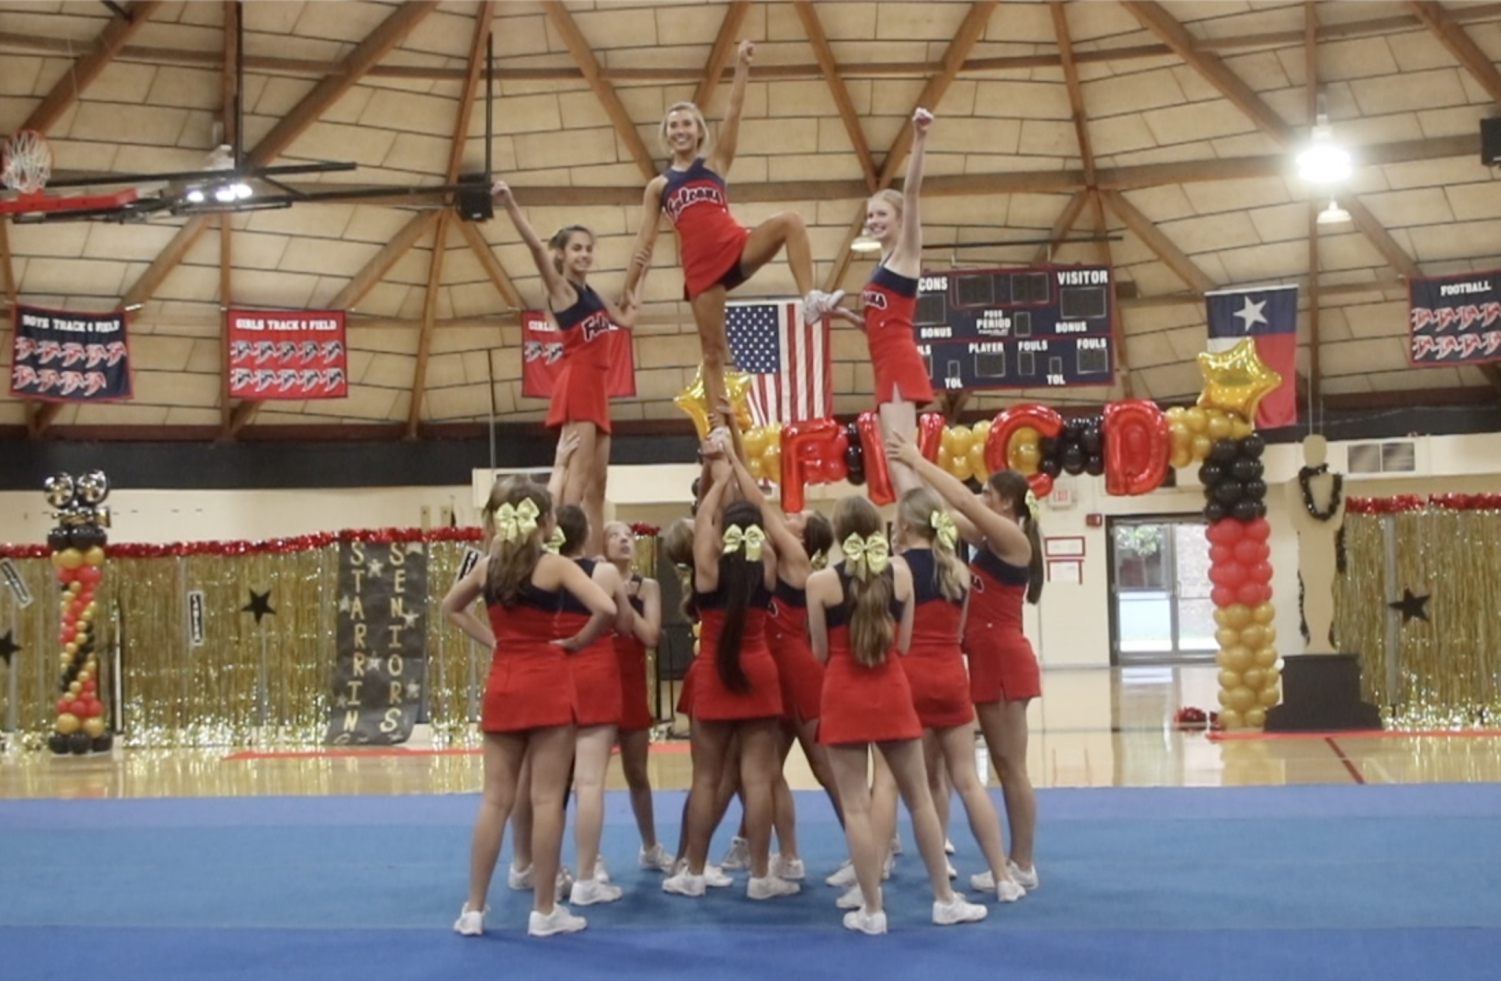 Cheerleaders performed a Hollywood-themed cheer routine at the pep rally.